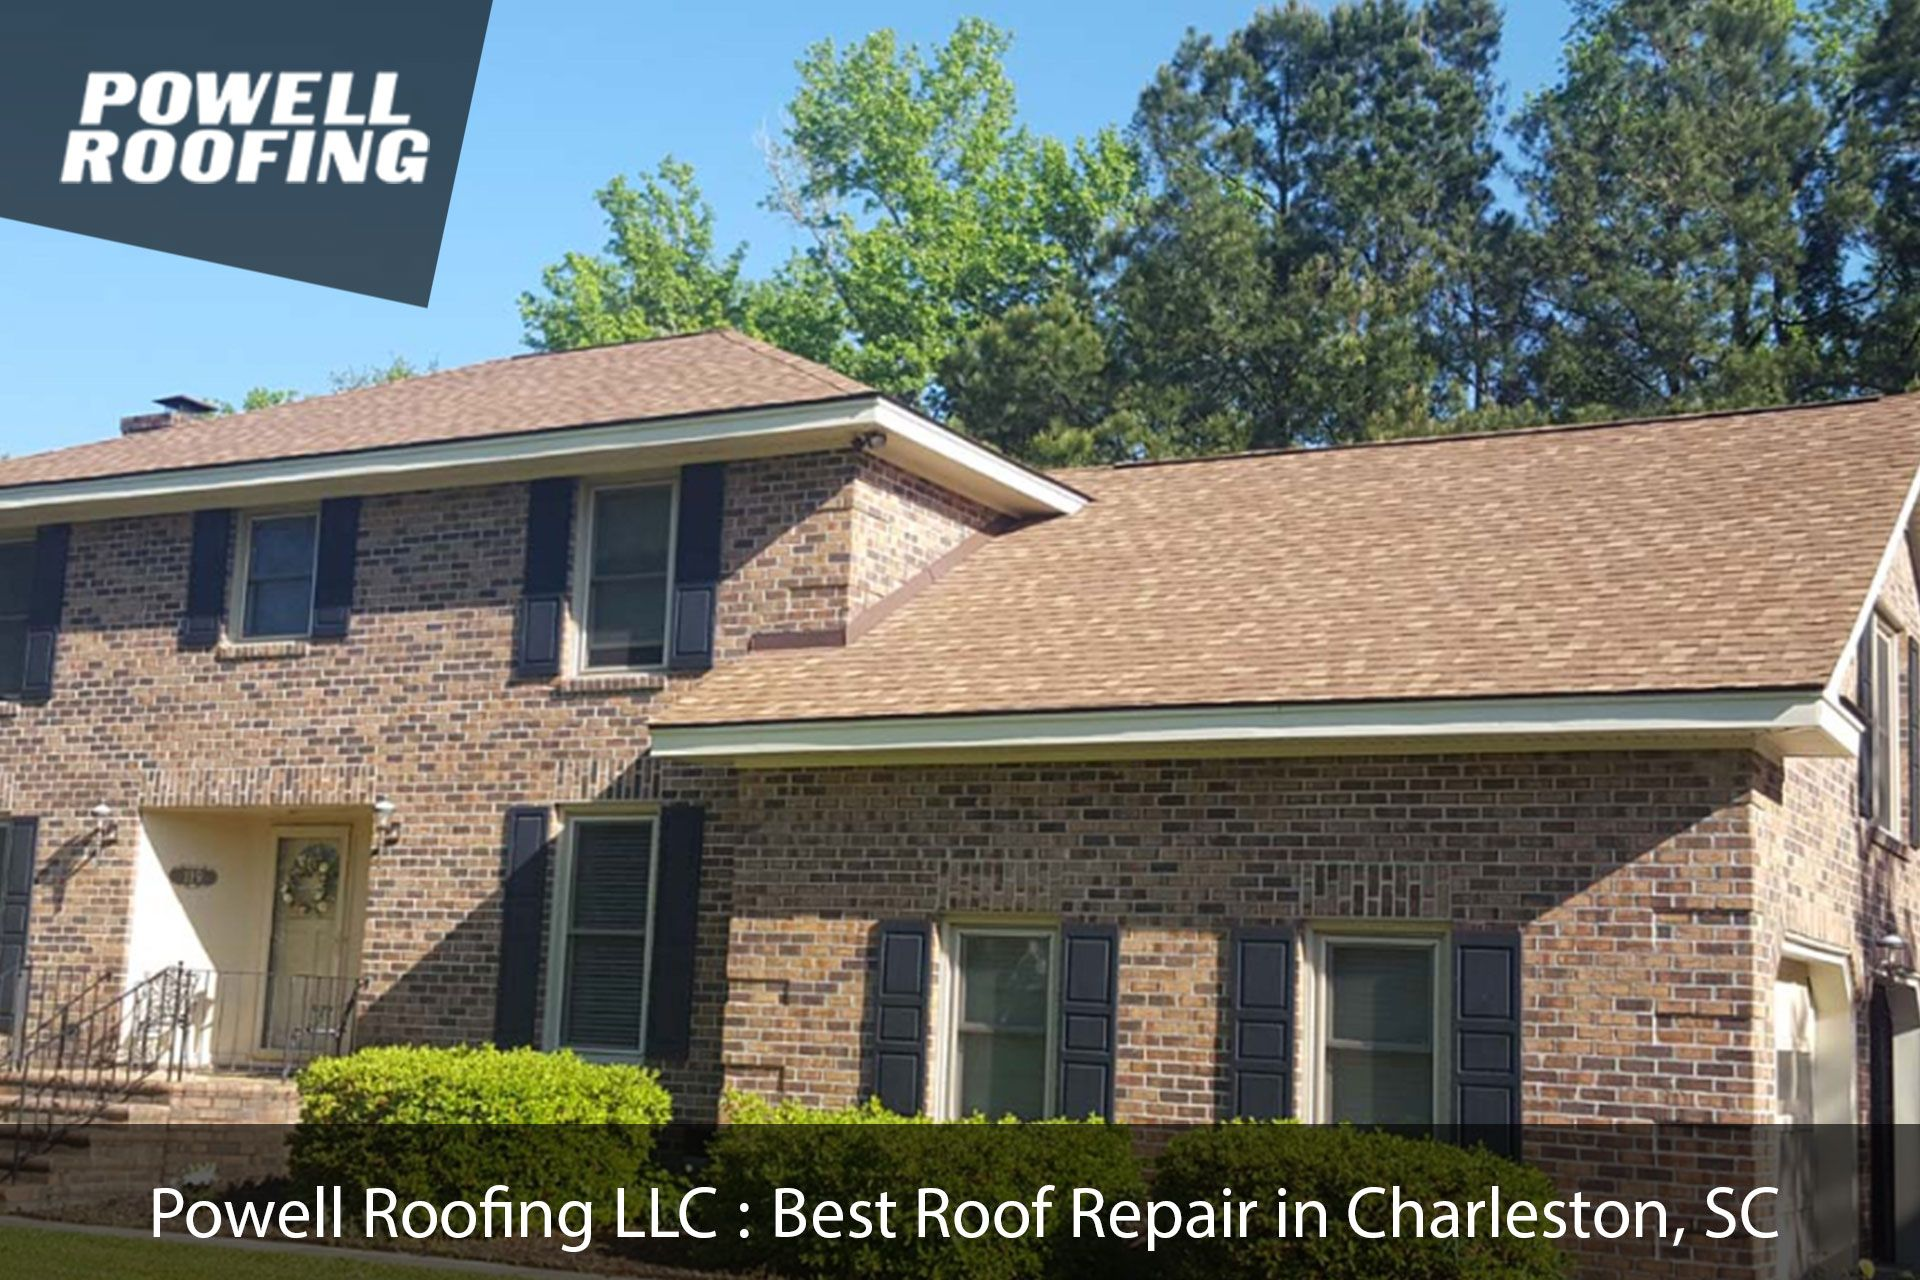 Powell Roofing Llc Provides One Of The High Quality Roof Repair Services In Charleston Sc Free Roofing Estimate Roof Roof Repair Roofing Roofing Contractors